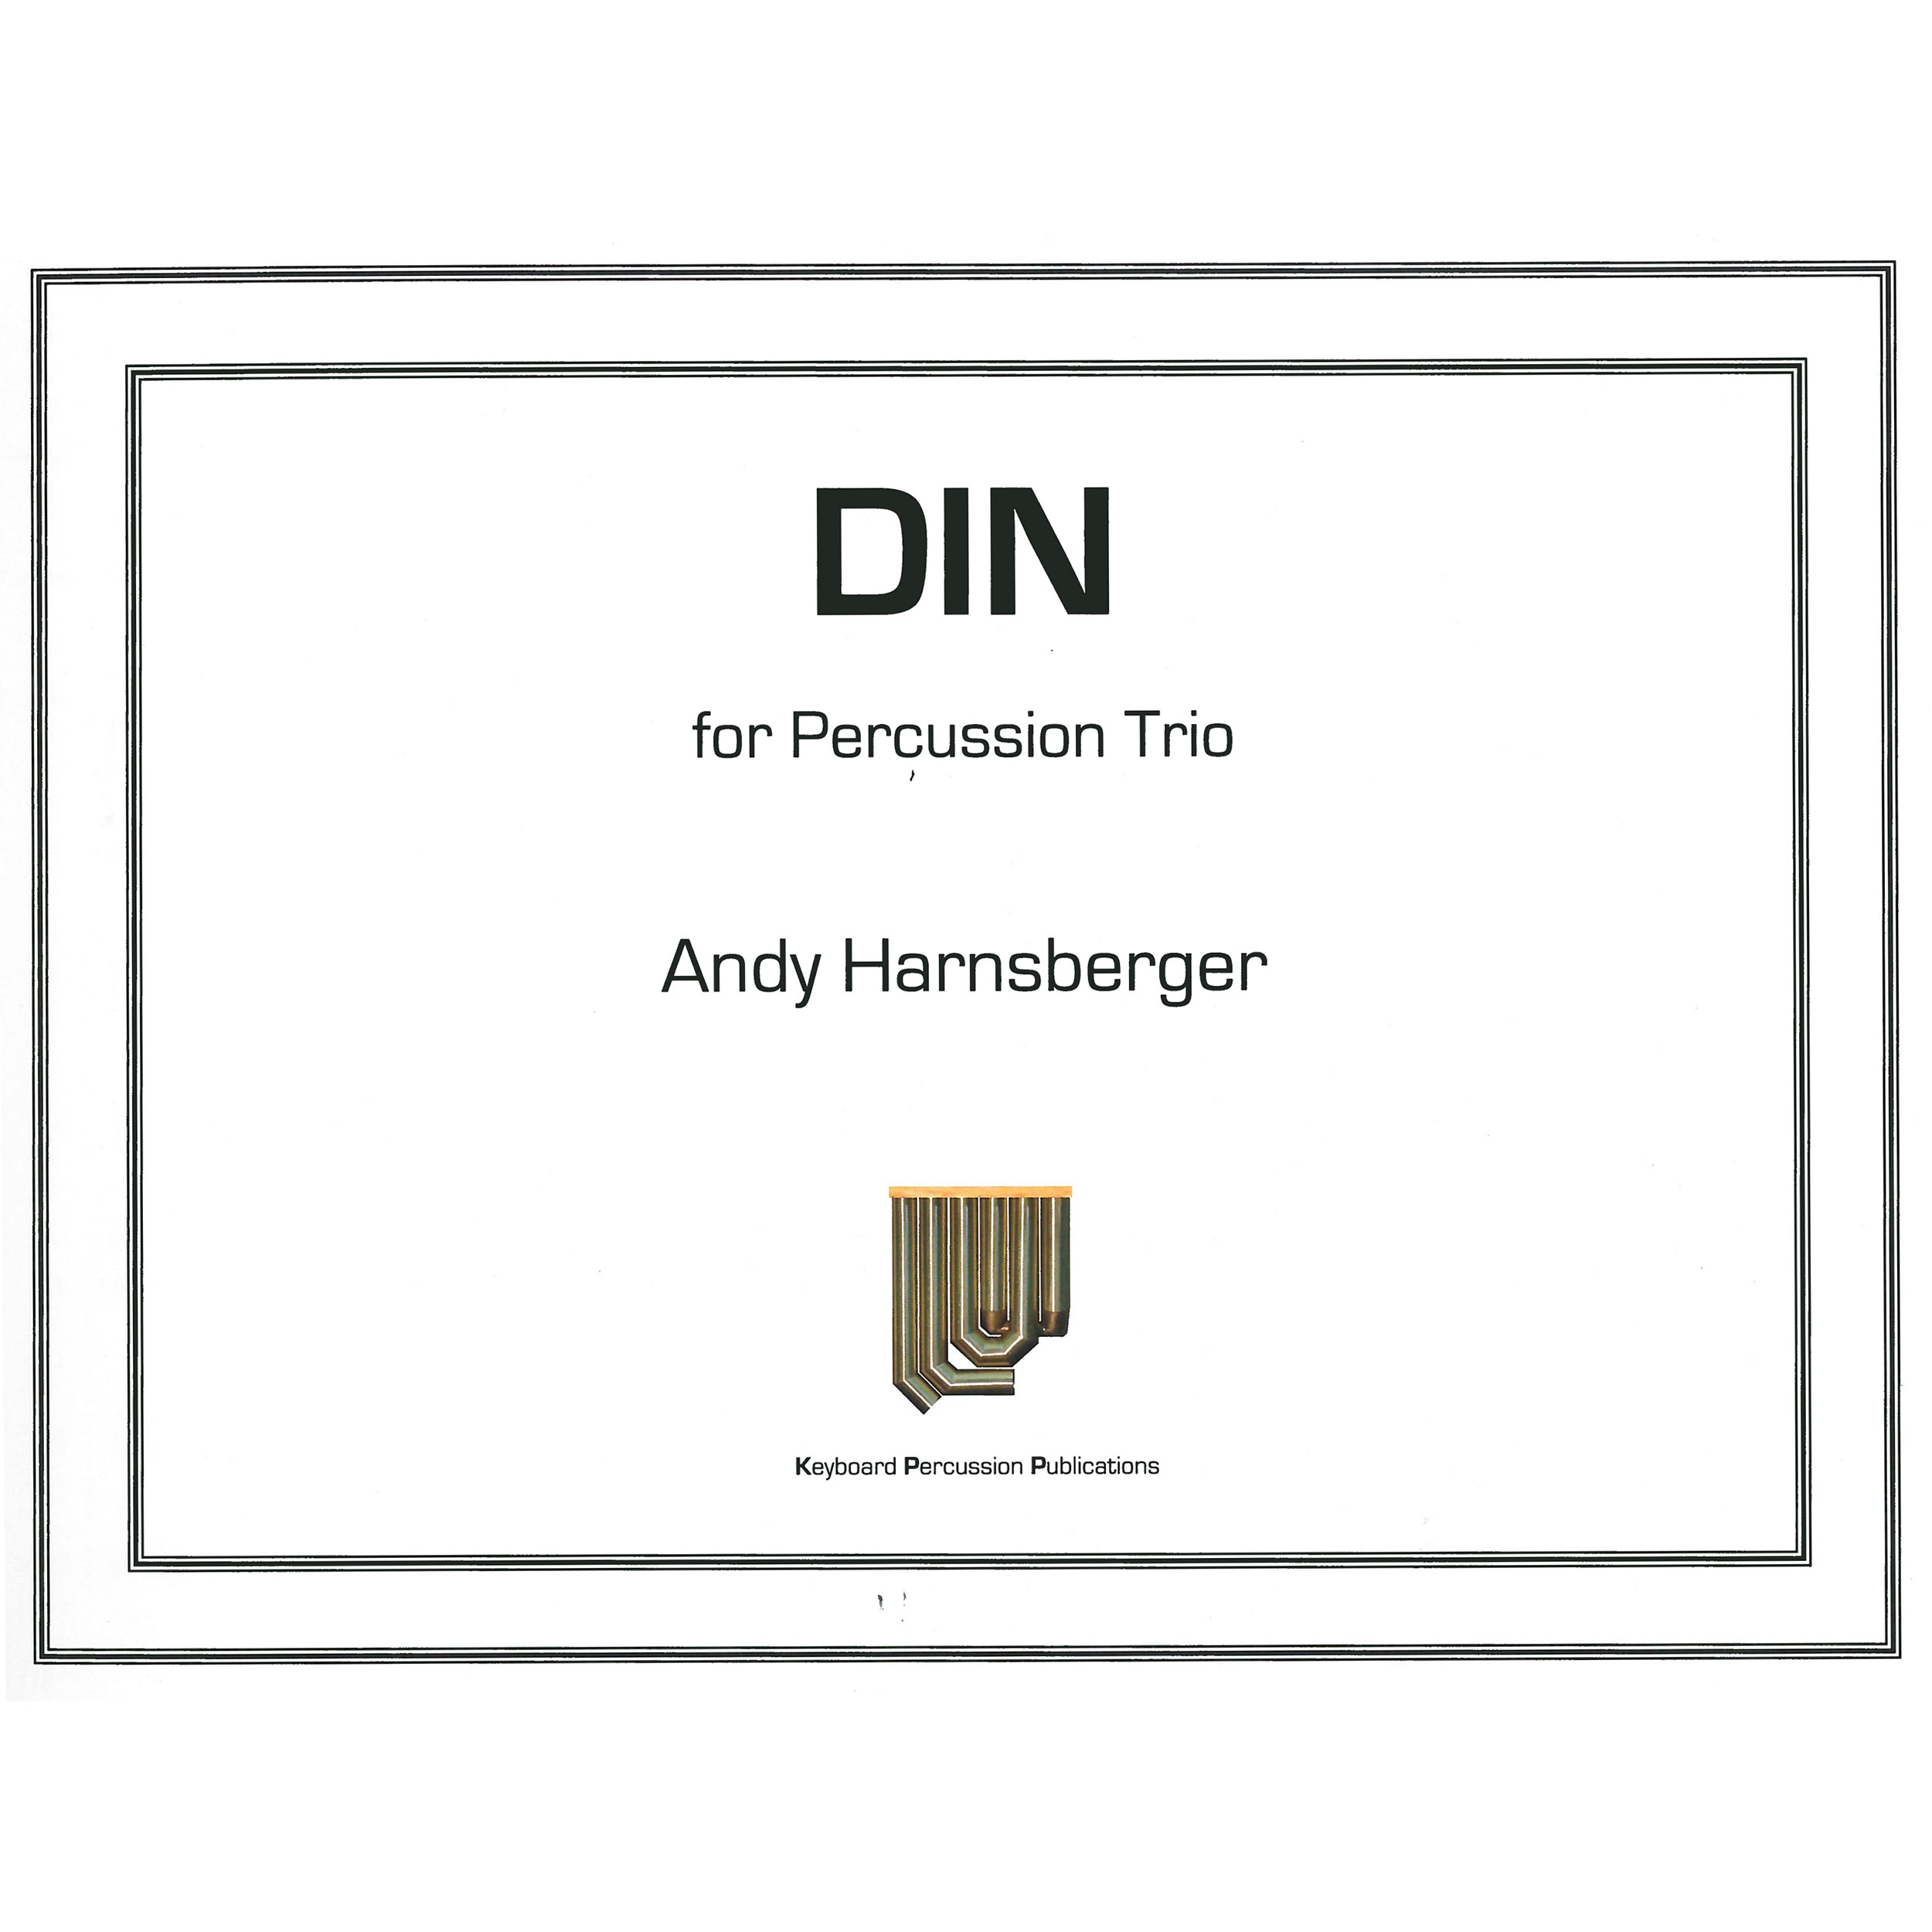 DIN by Andy Harnsberger